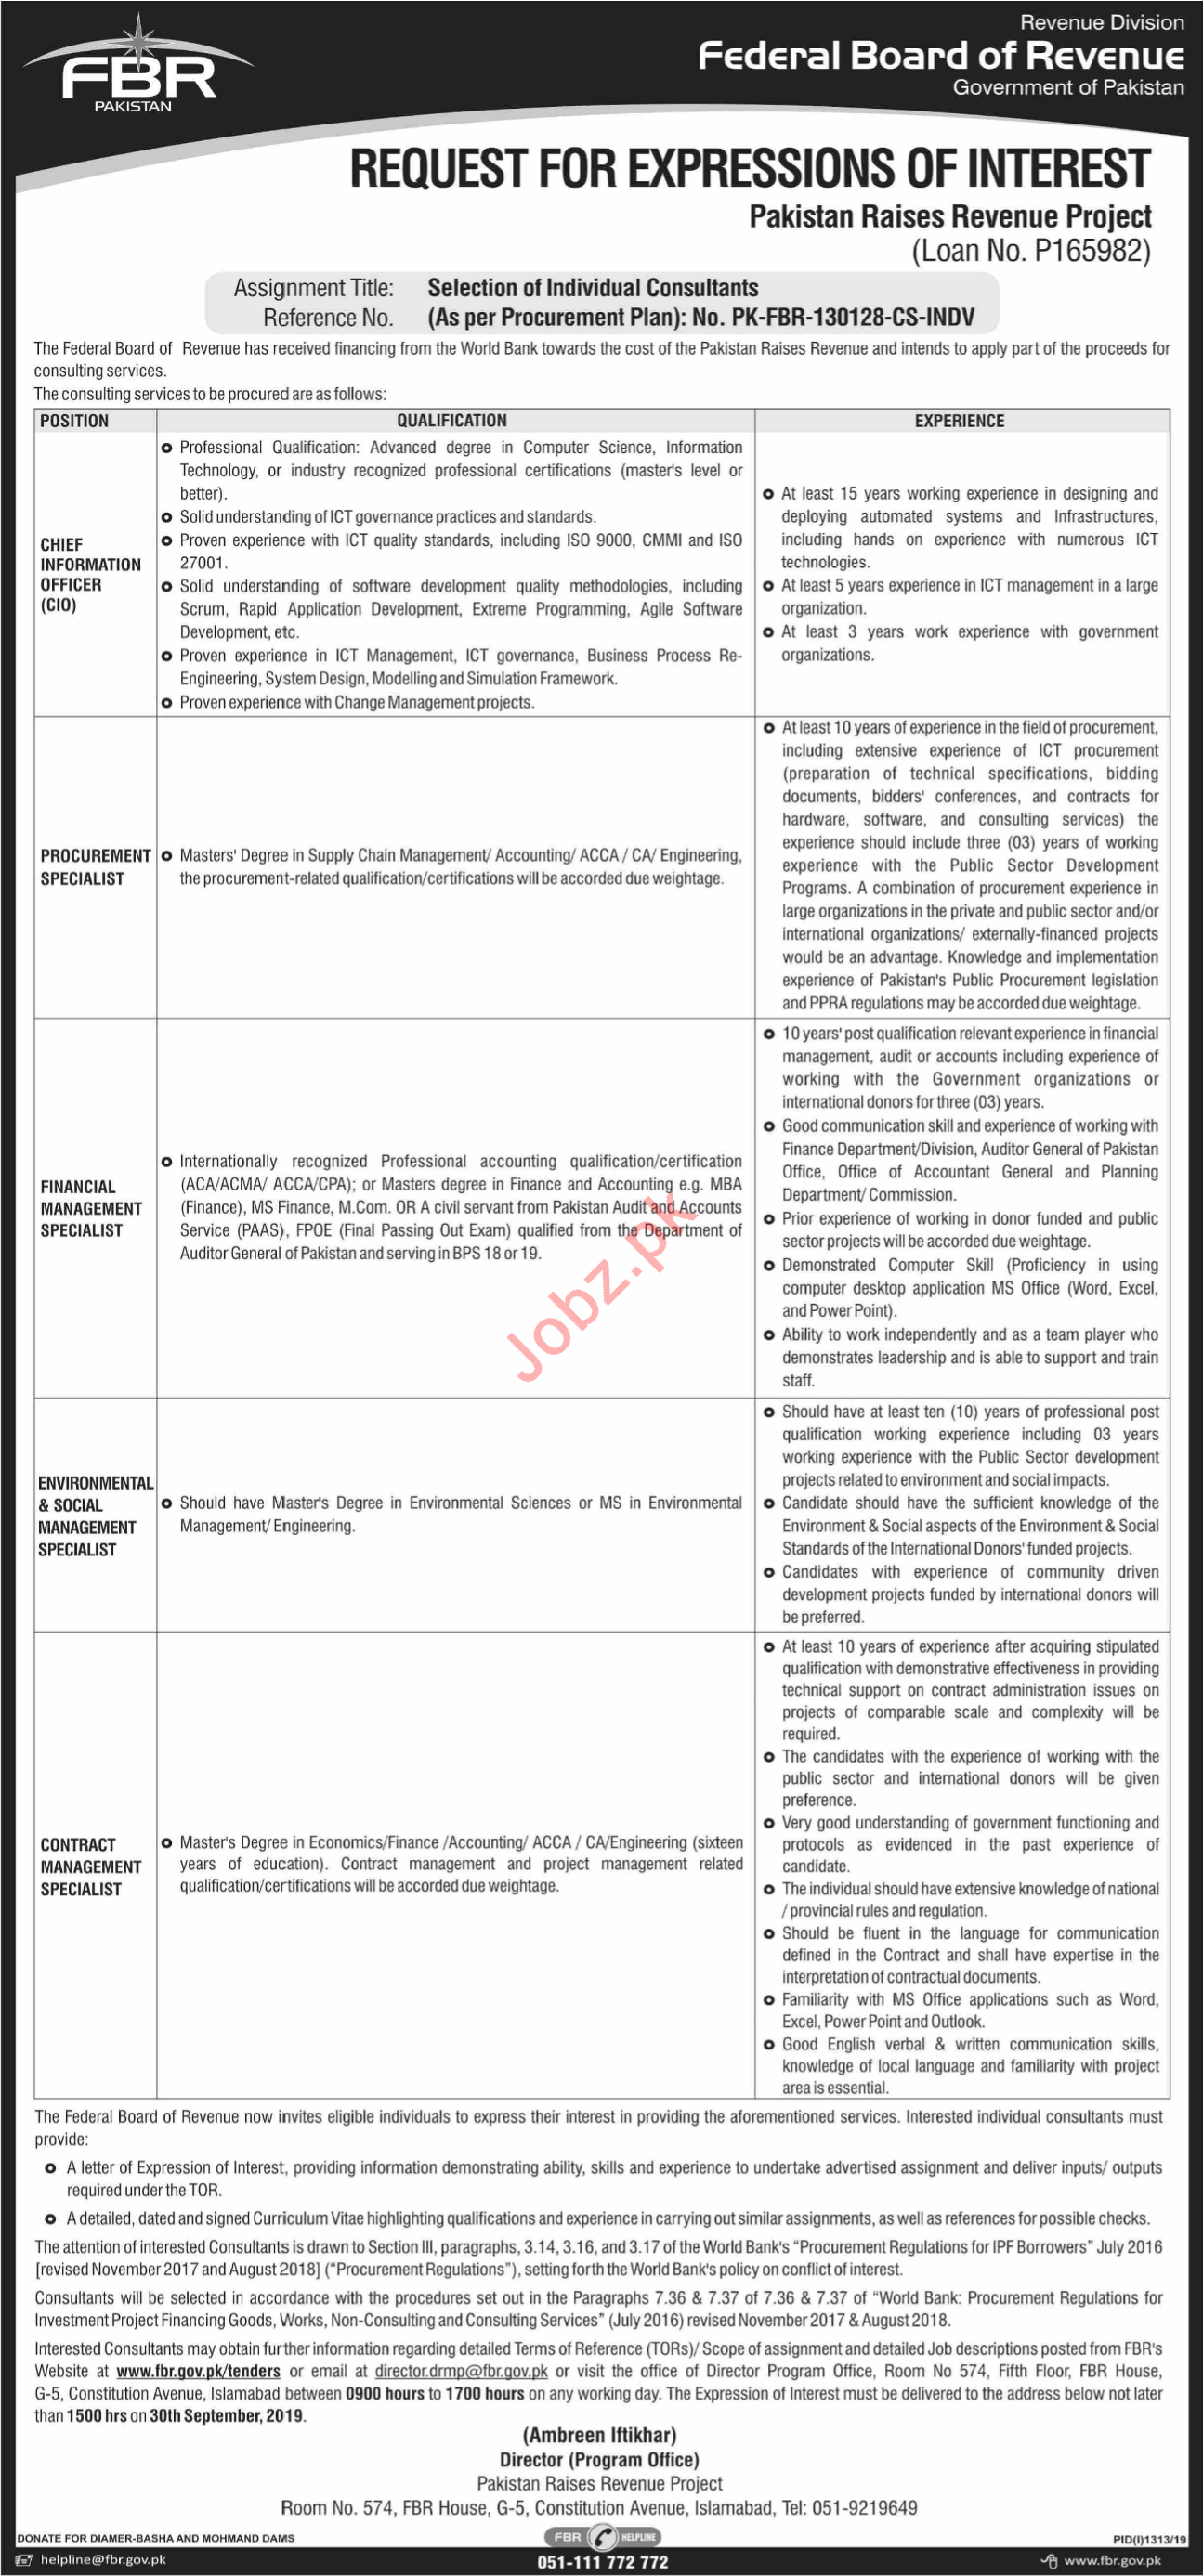 Federal Board of Revenue FBR Jobs 2019 in Islamabad